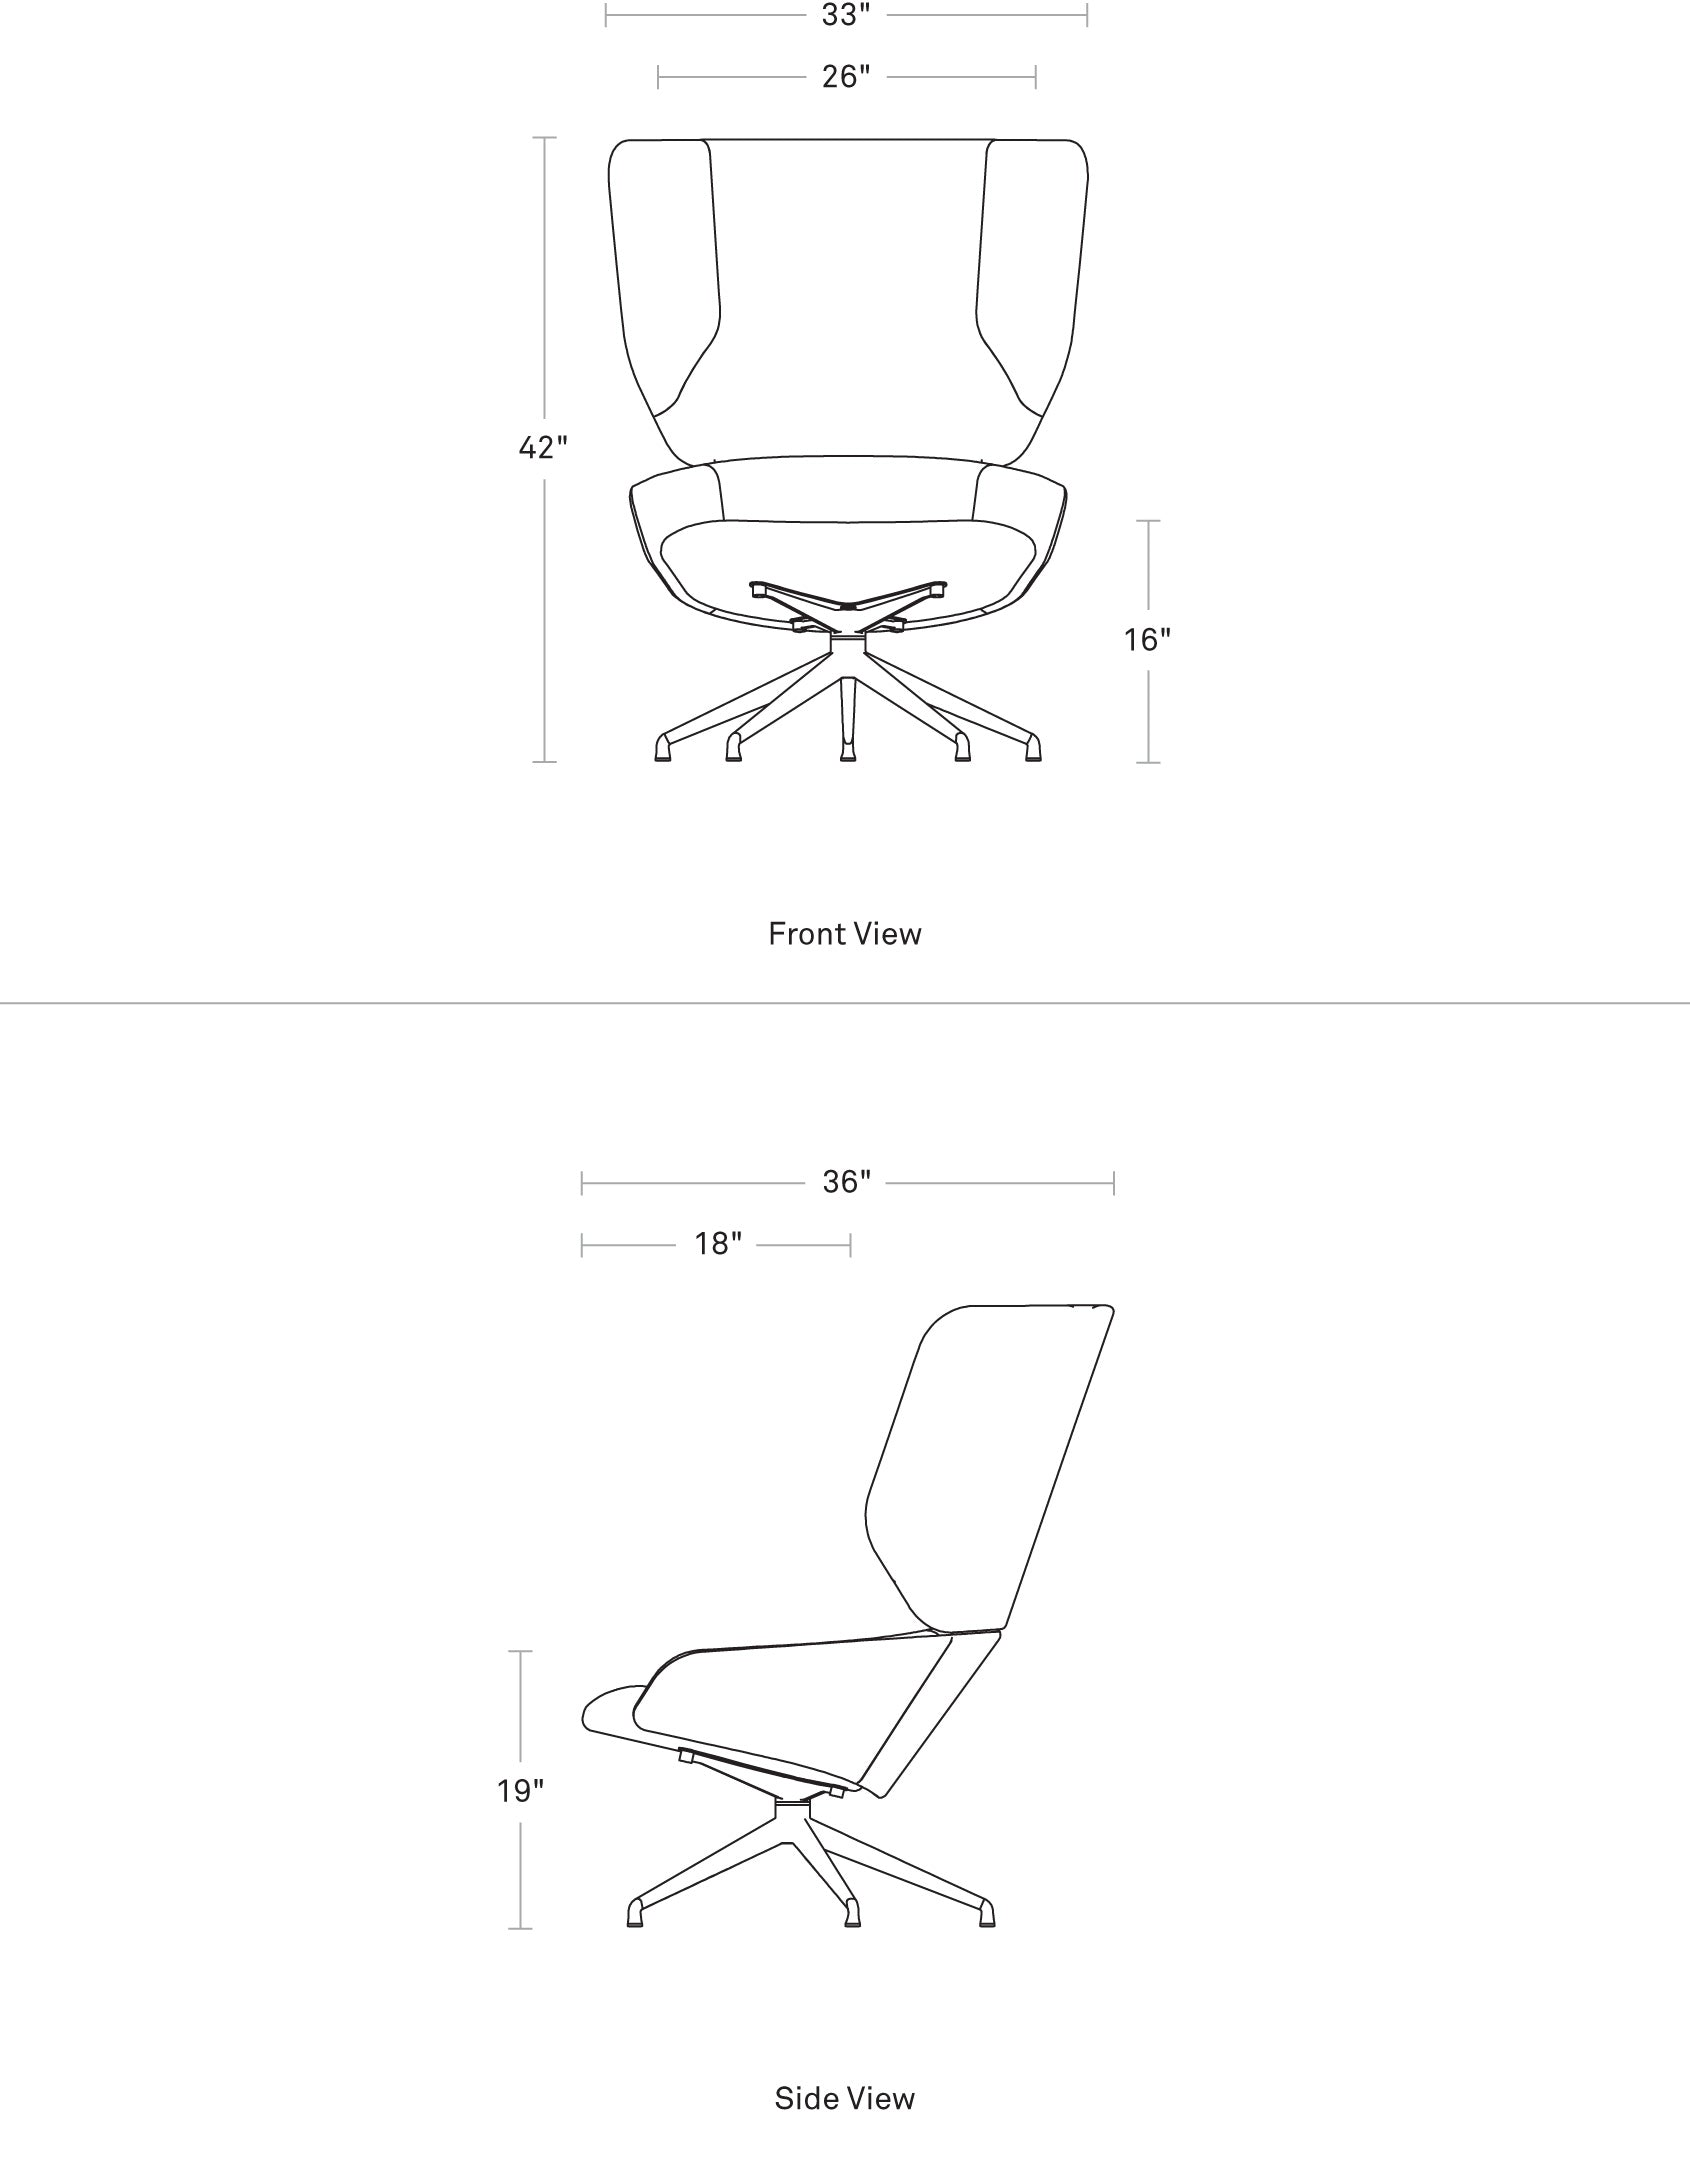 Heads Up Swivel Chair Dimensions